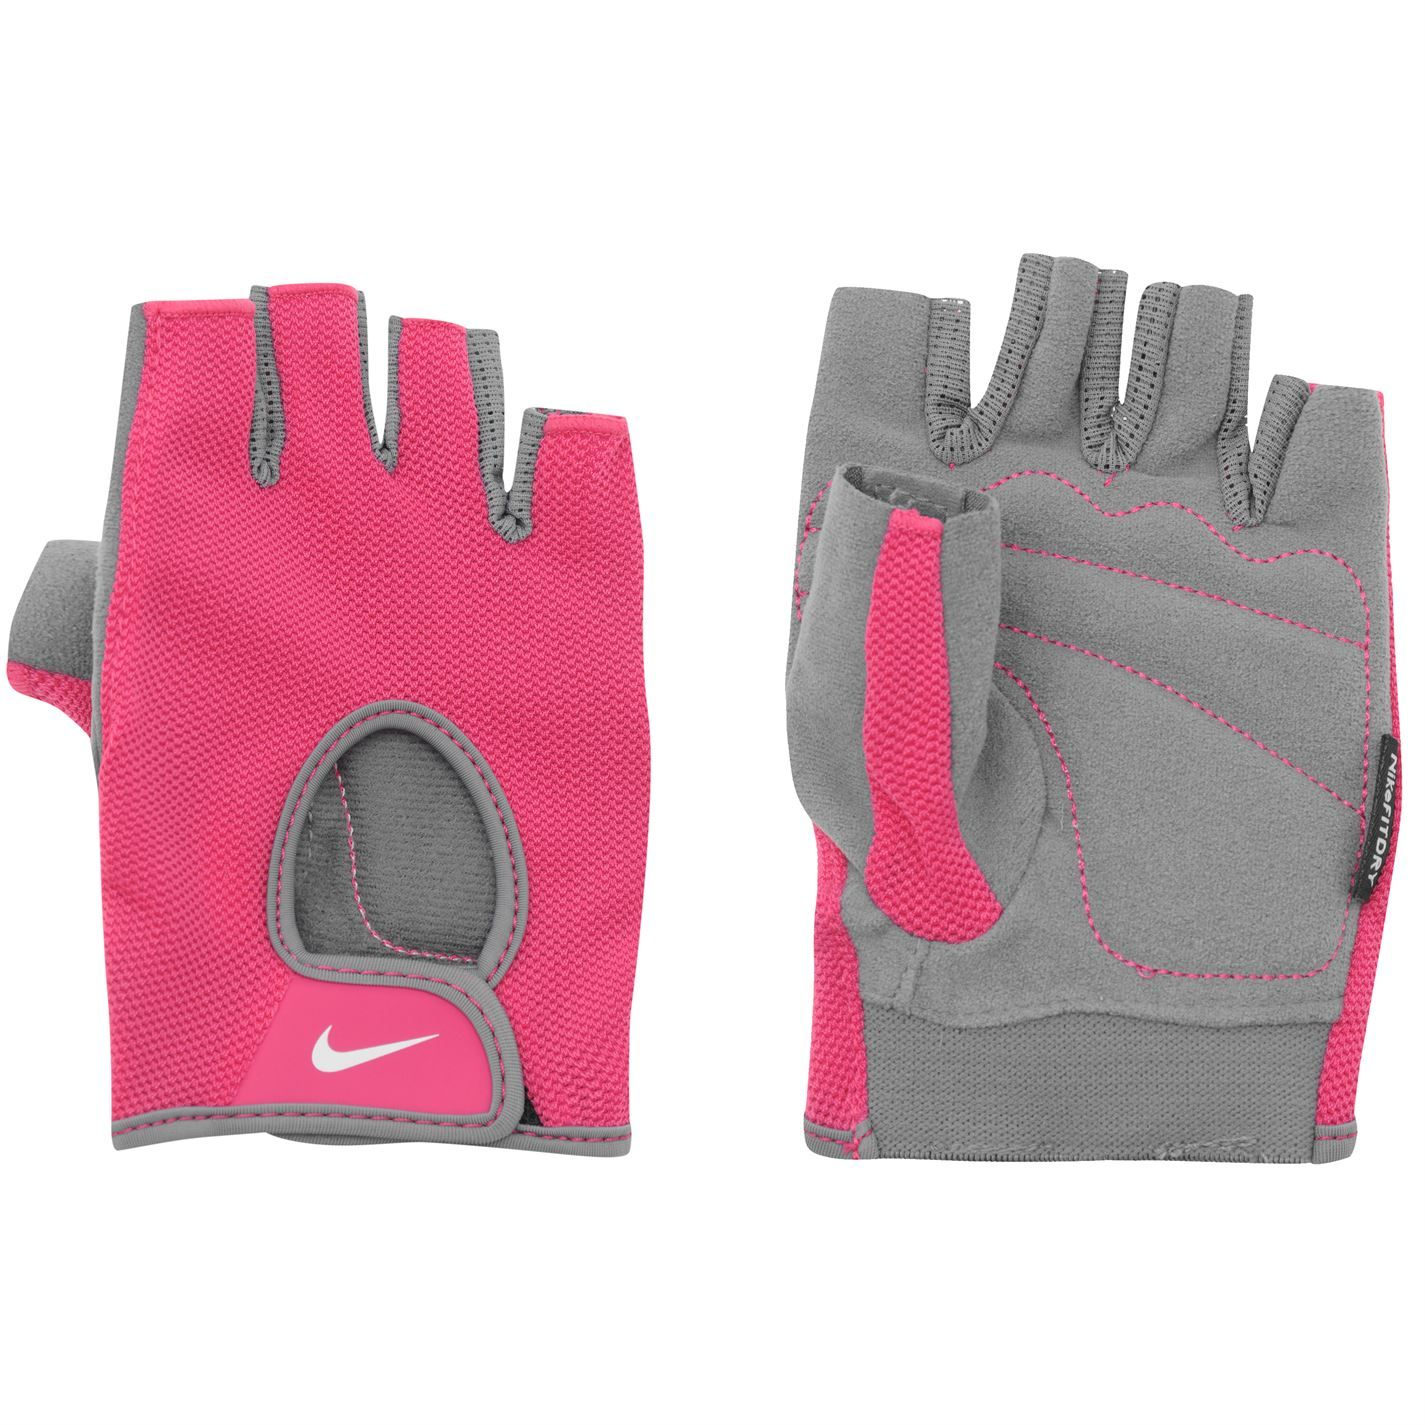 Workout Gloves Womens Nike: Nike Gloves Gym For Women - Google Search